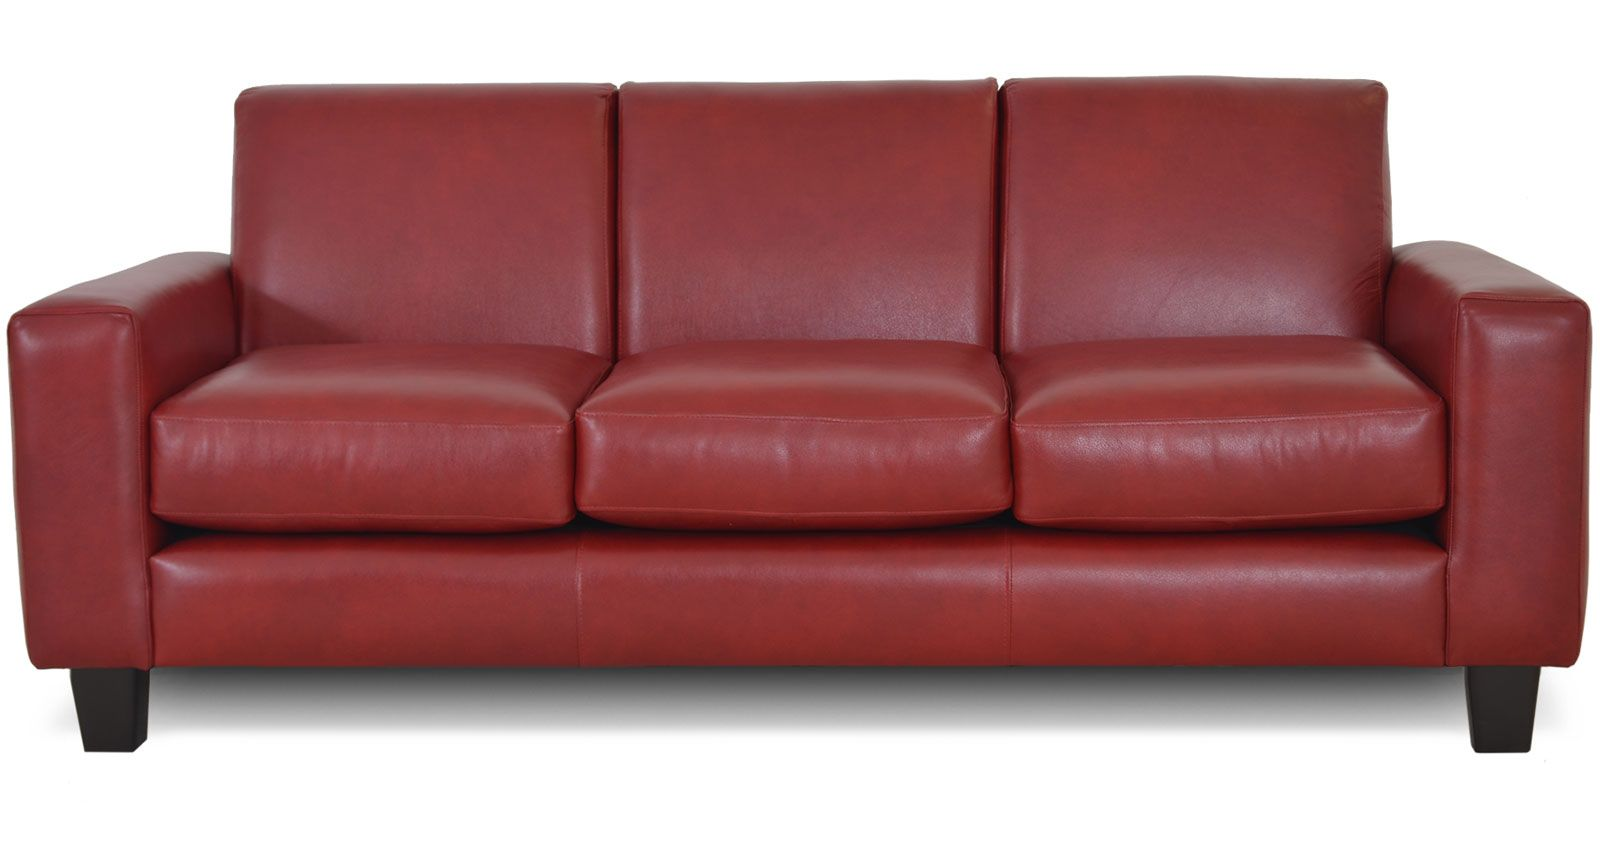 red leather tight back sofa ekenasfiber johnhenriksson se u2022 rh ekenasfiber johnhenriksson se